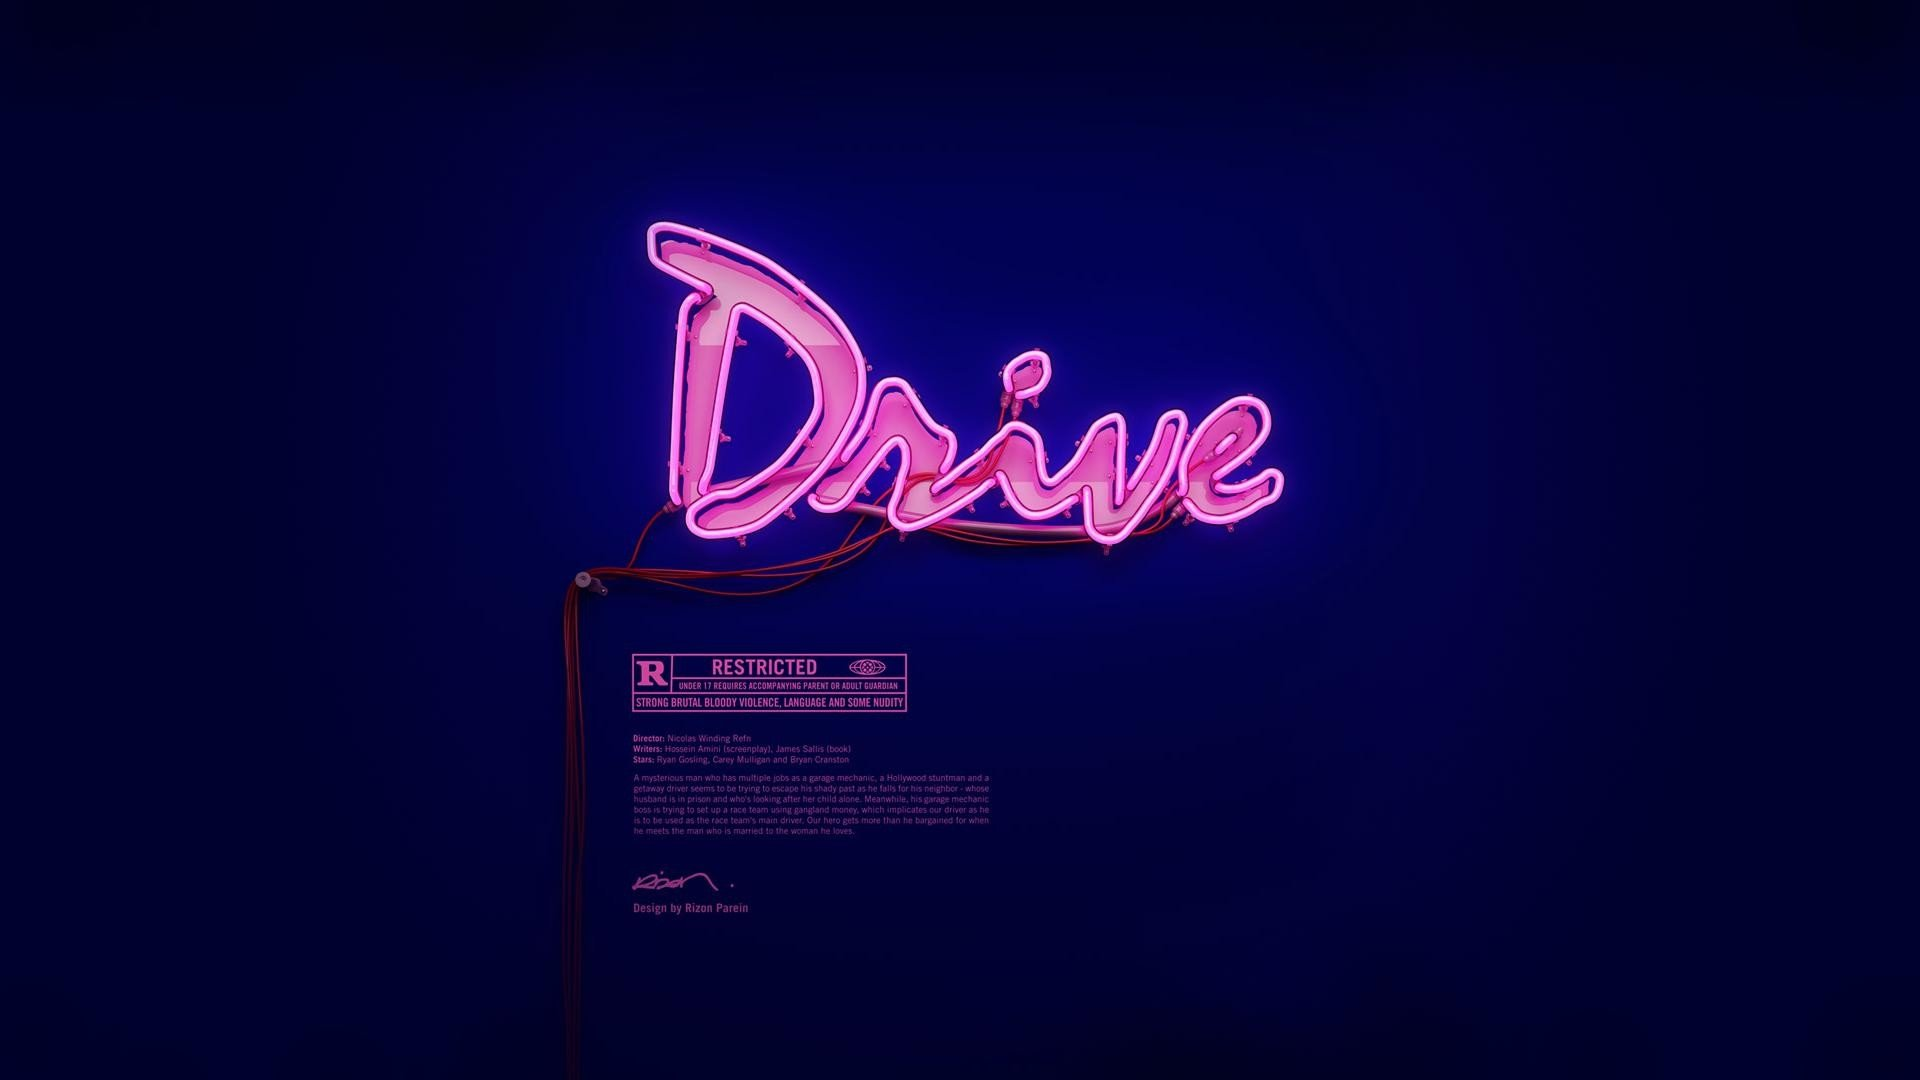 Movies Drive Movie Neon Wallpaper